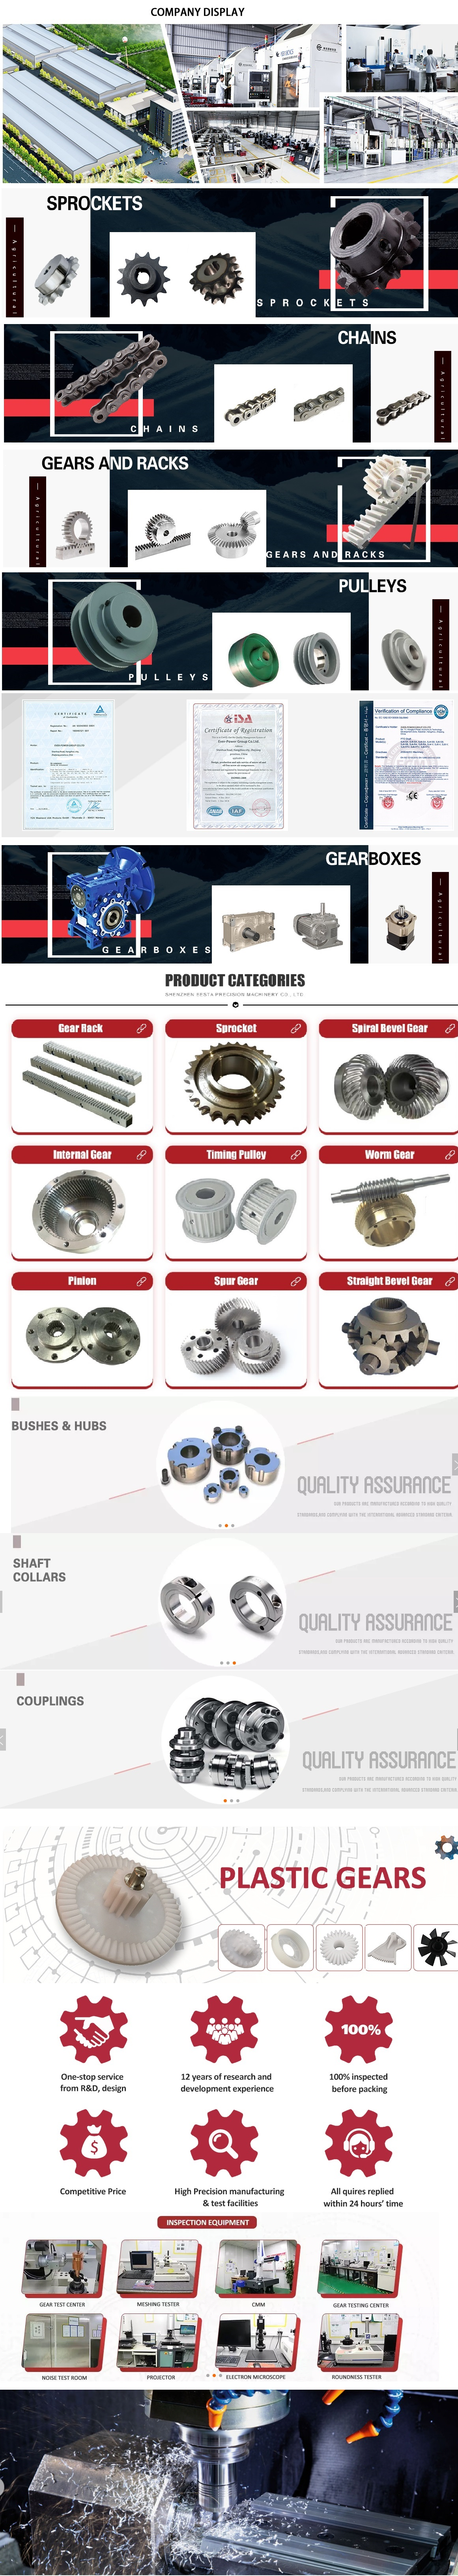 China manufacturer & factory supplier for factory  in Dushanbe Tajikistan  manufacturer for  Irregular Sized Power Transmission Gear Shaft PTO Gear made from Alloy Metal for Vehicles  Tractors With high quality best price & service